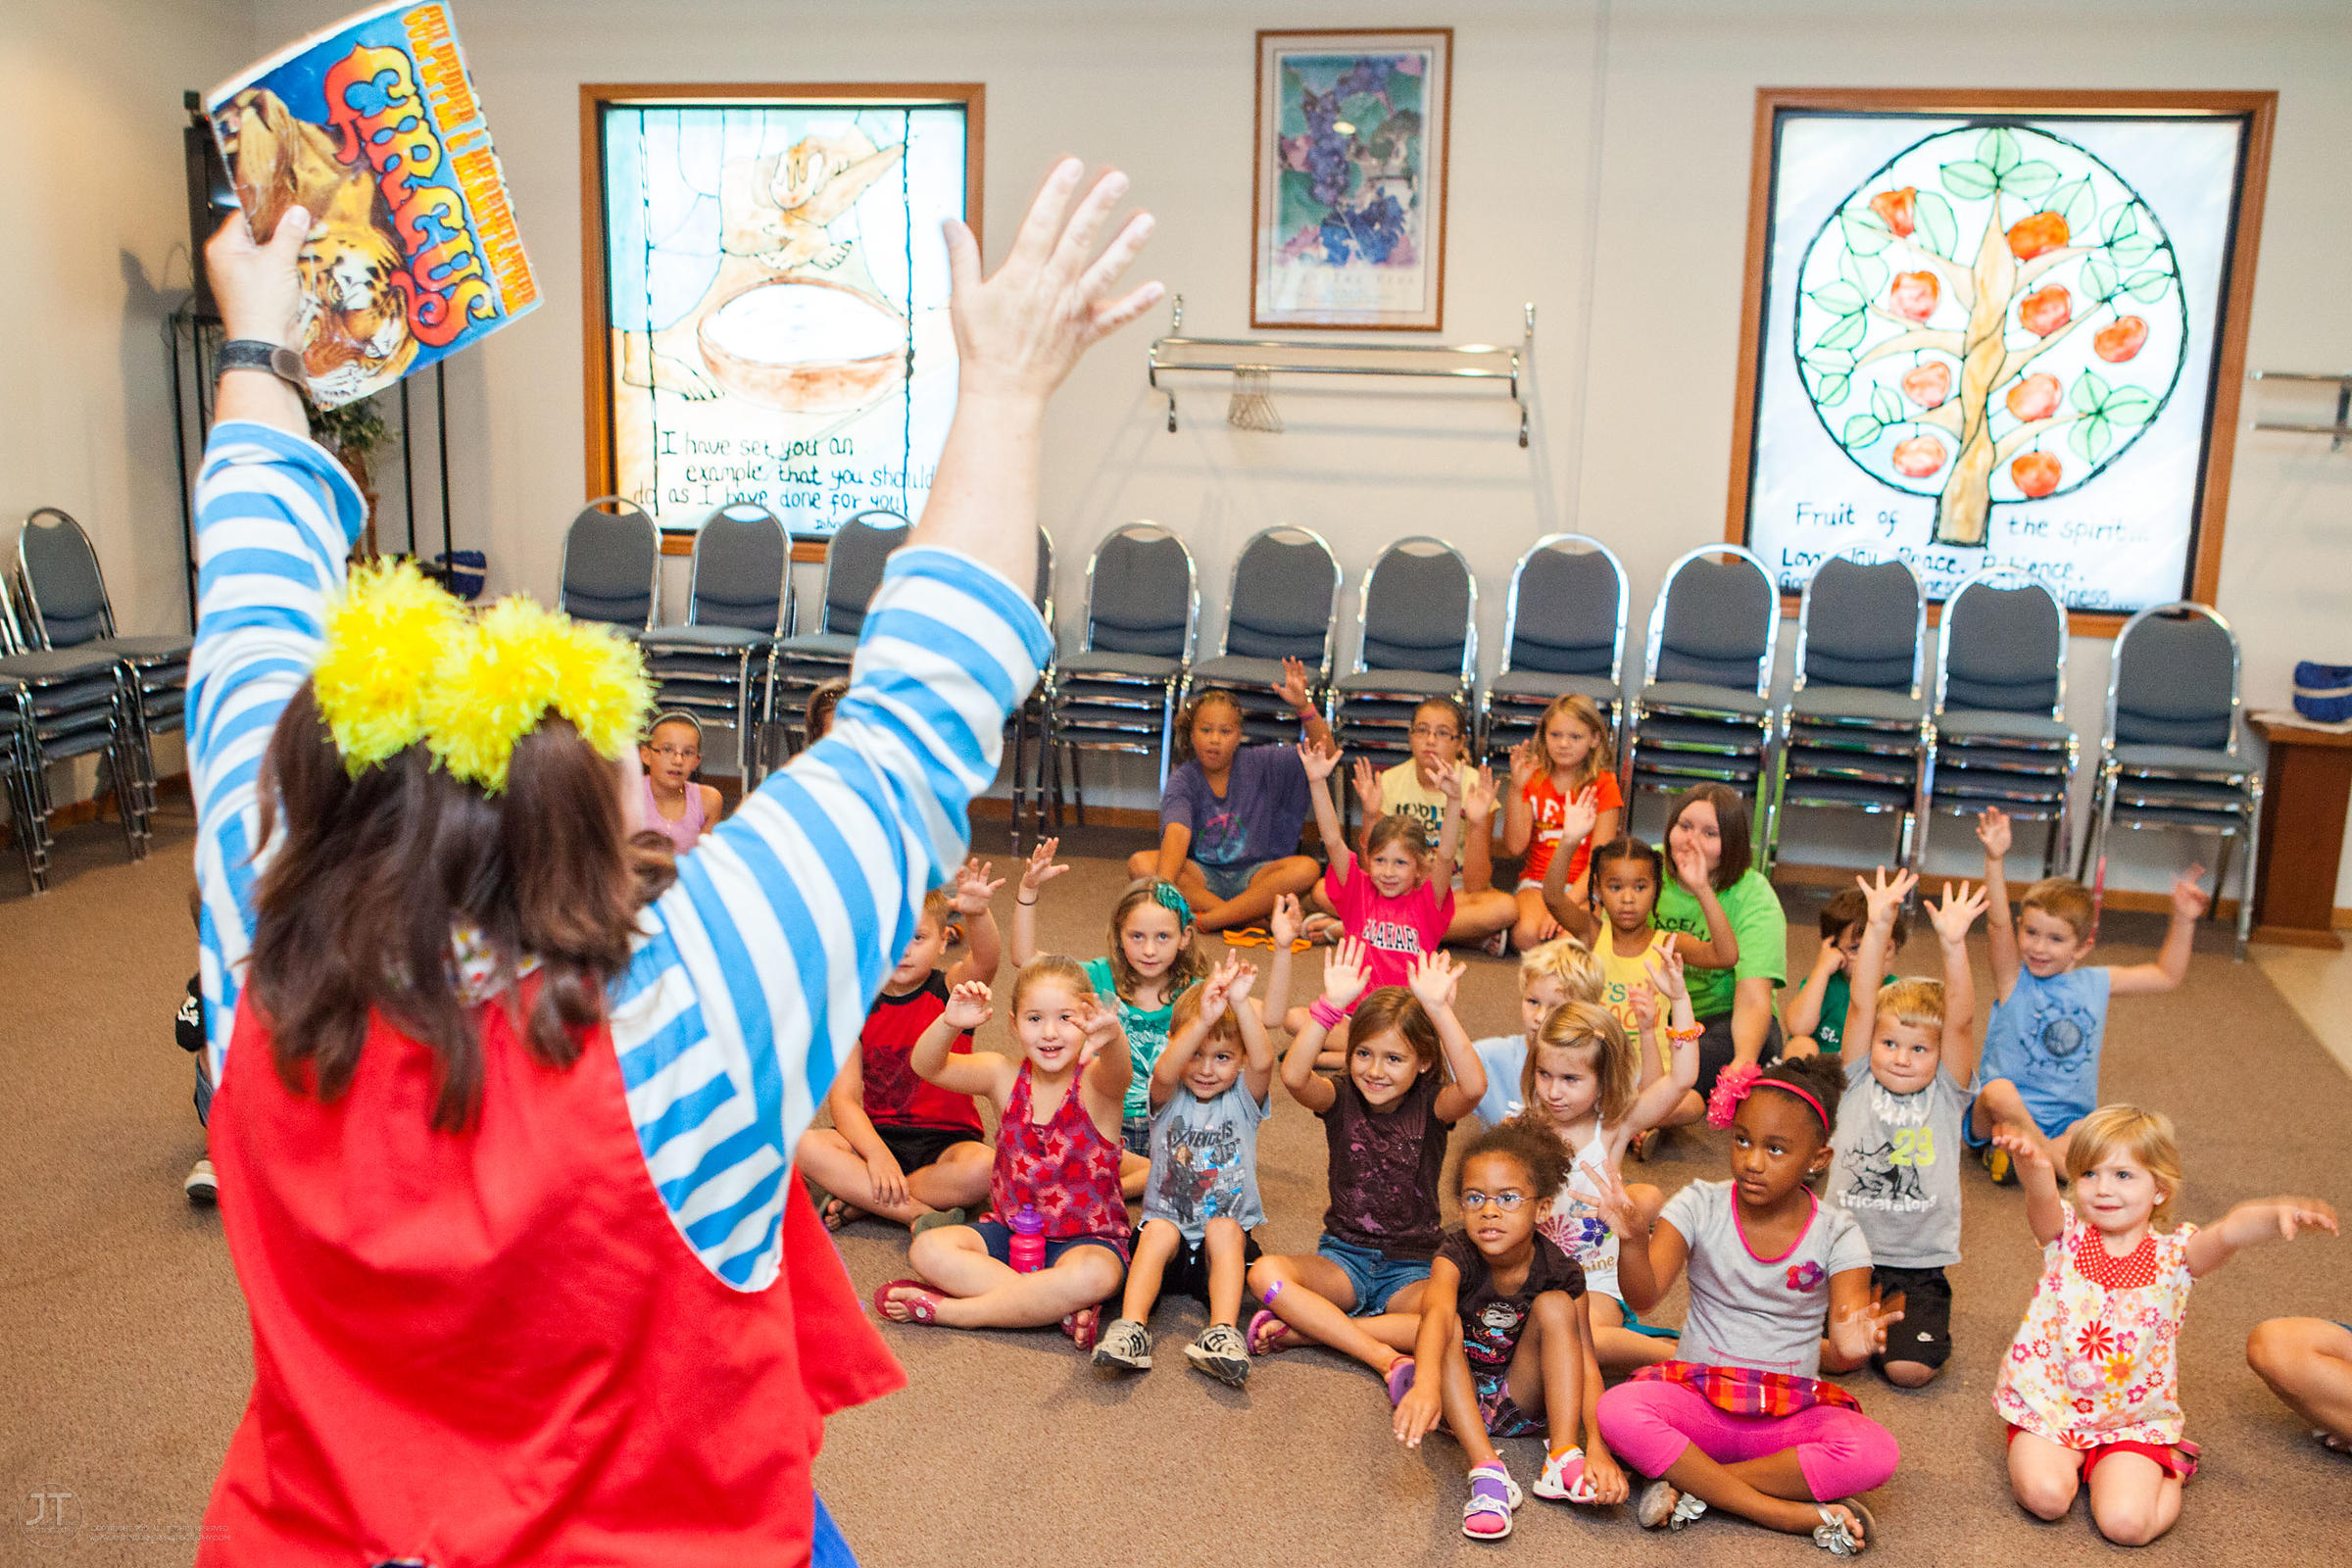 Ms. Skeeter, a clown performer with the Culpepper-Merriweather Great Combined Circus entertains children at the Graceland Chu...